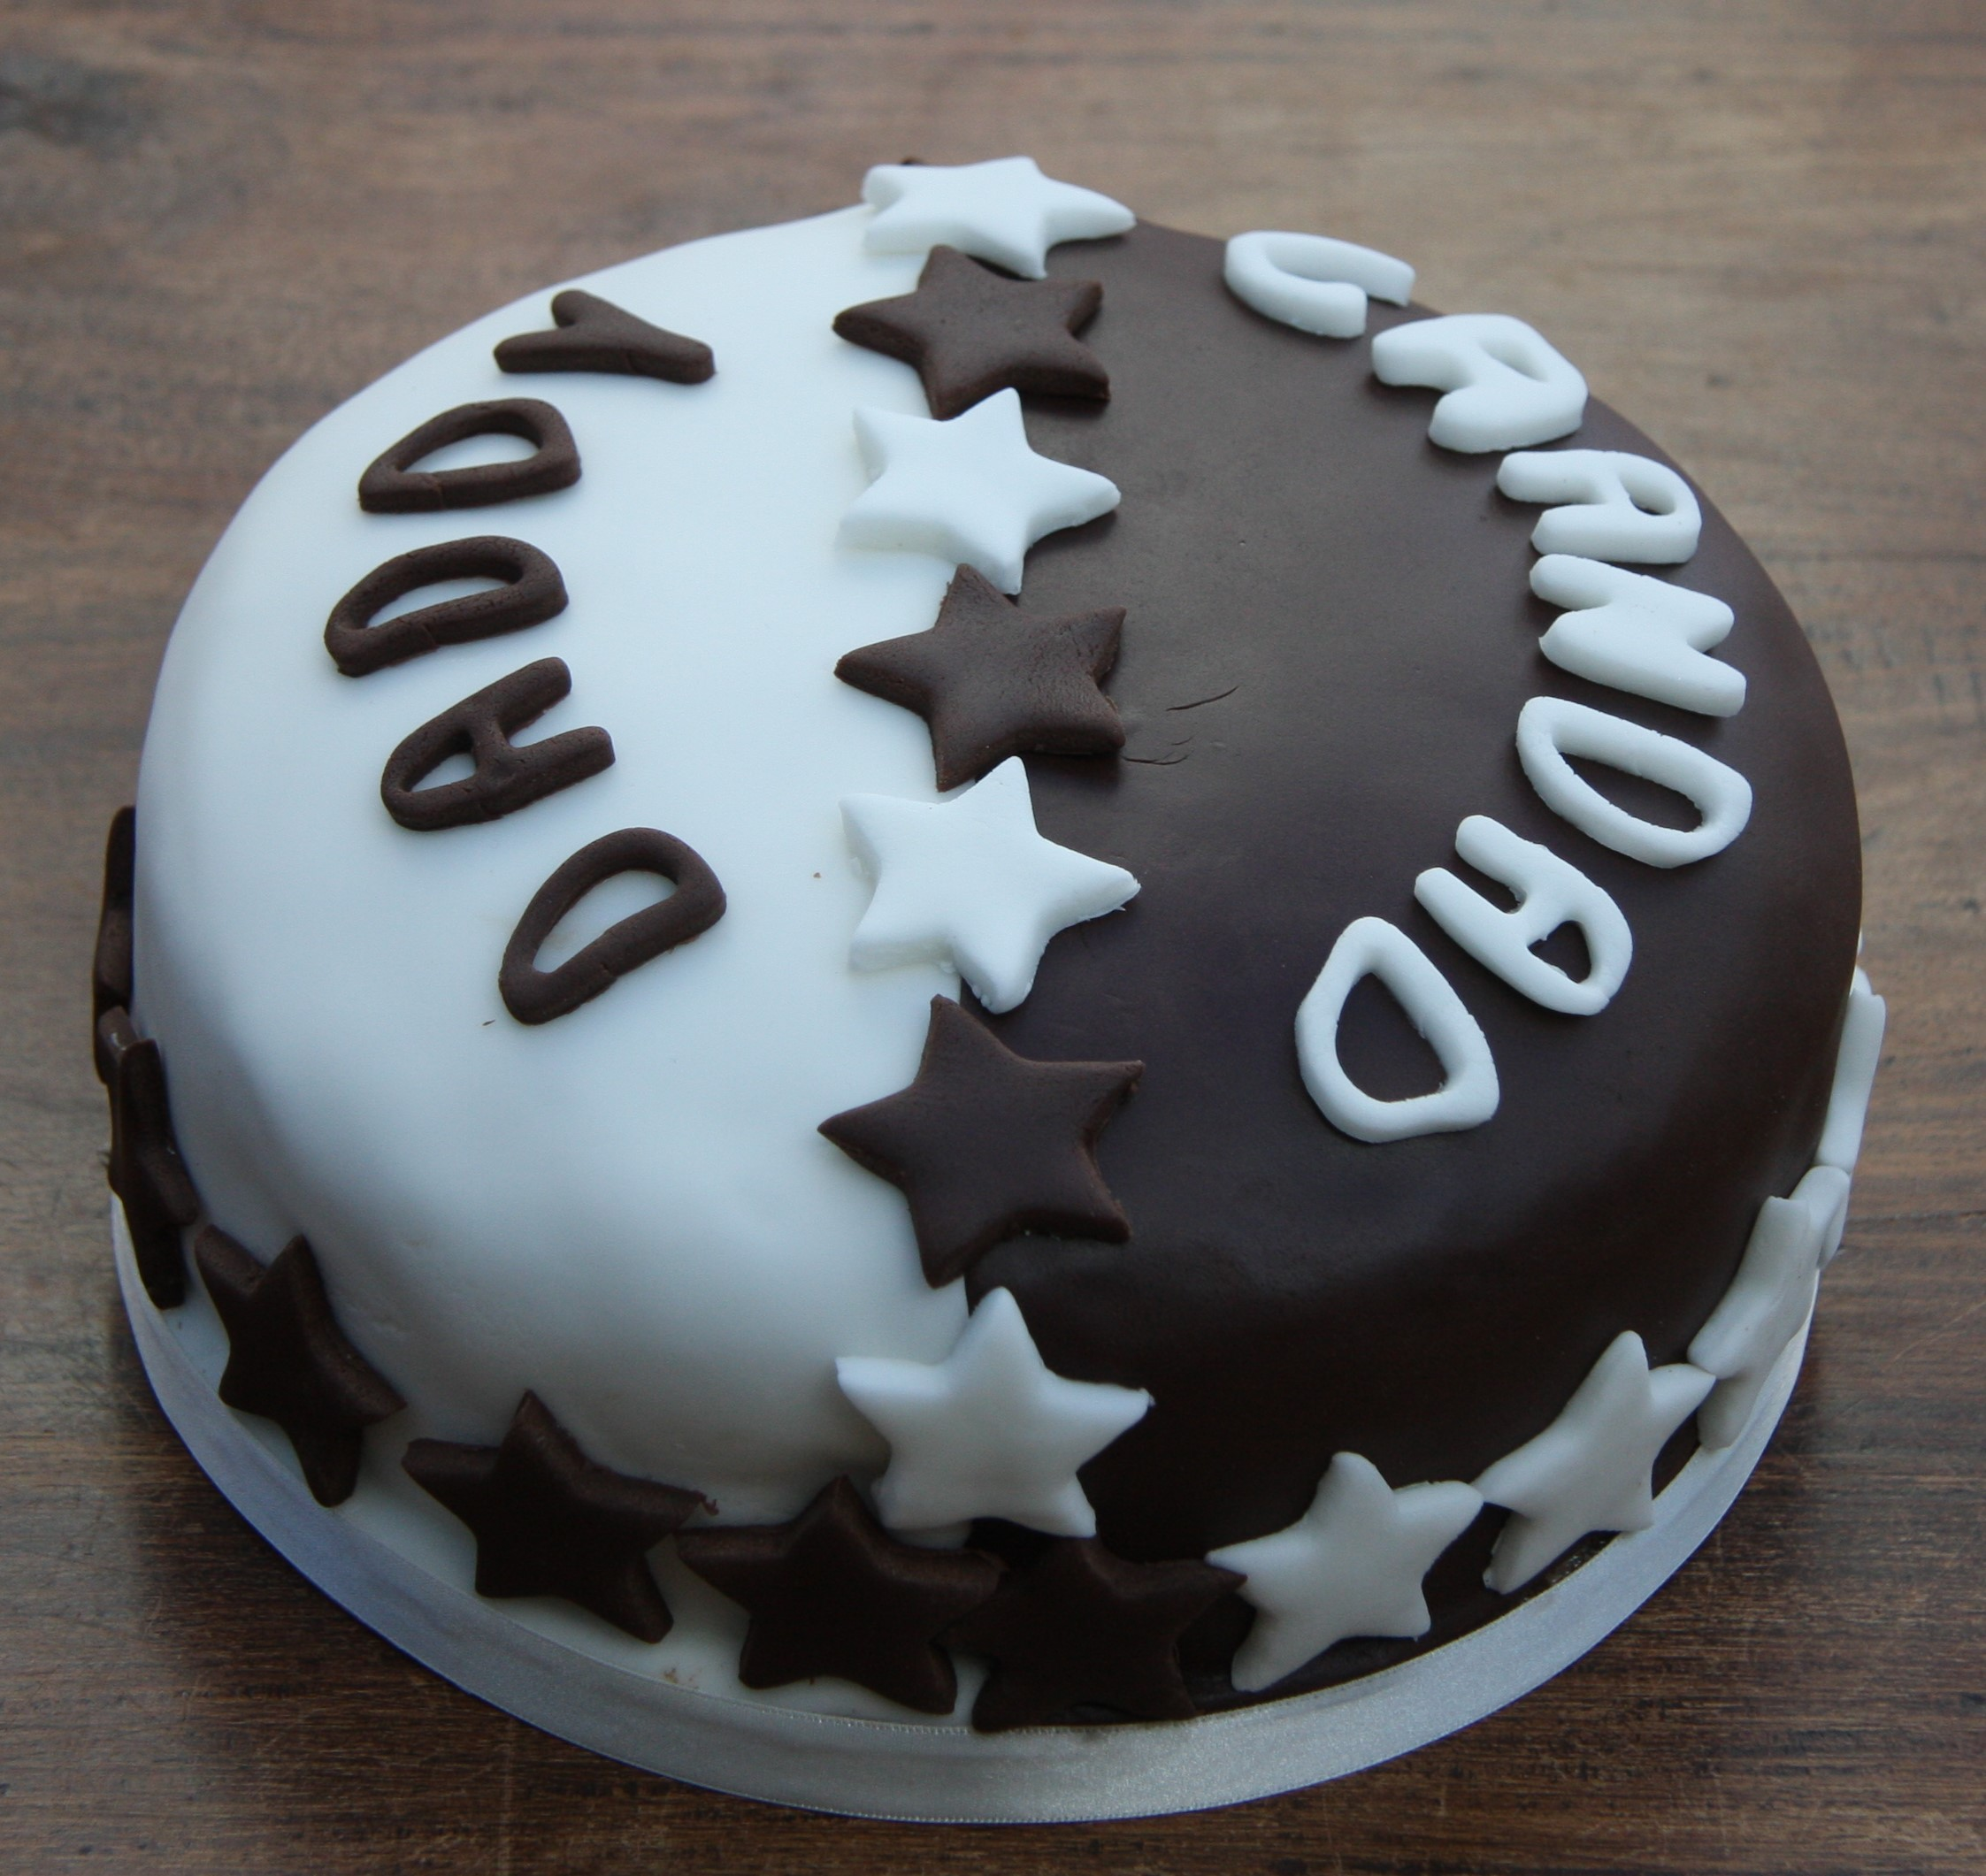 Images Of Chocolate Vanilla Cake : logo greek pantheon family tree father and son love quotes ...